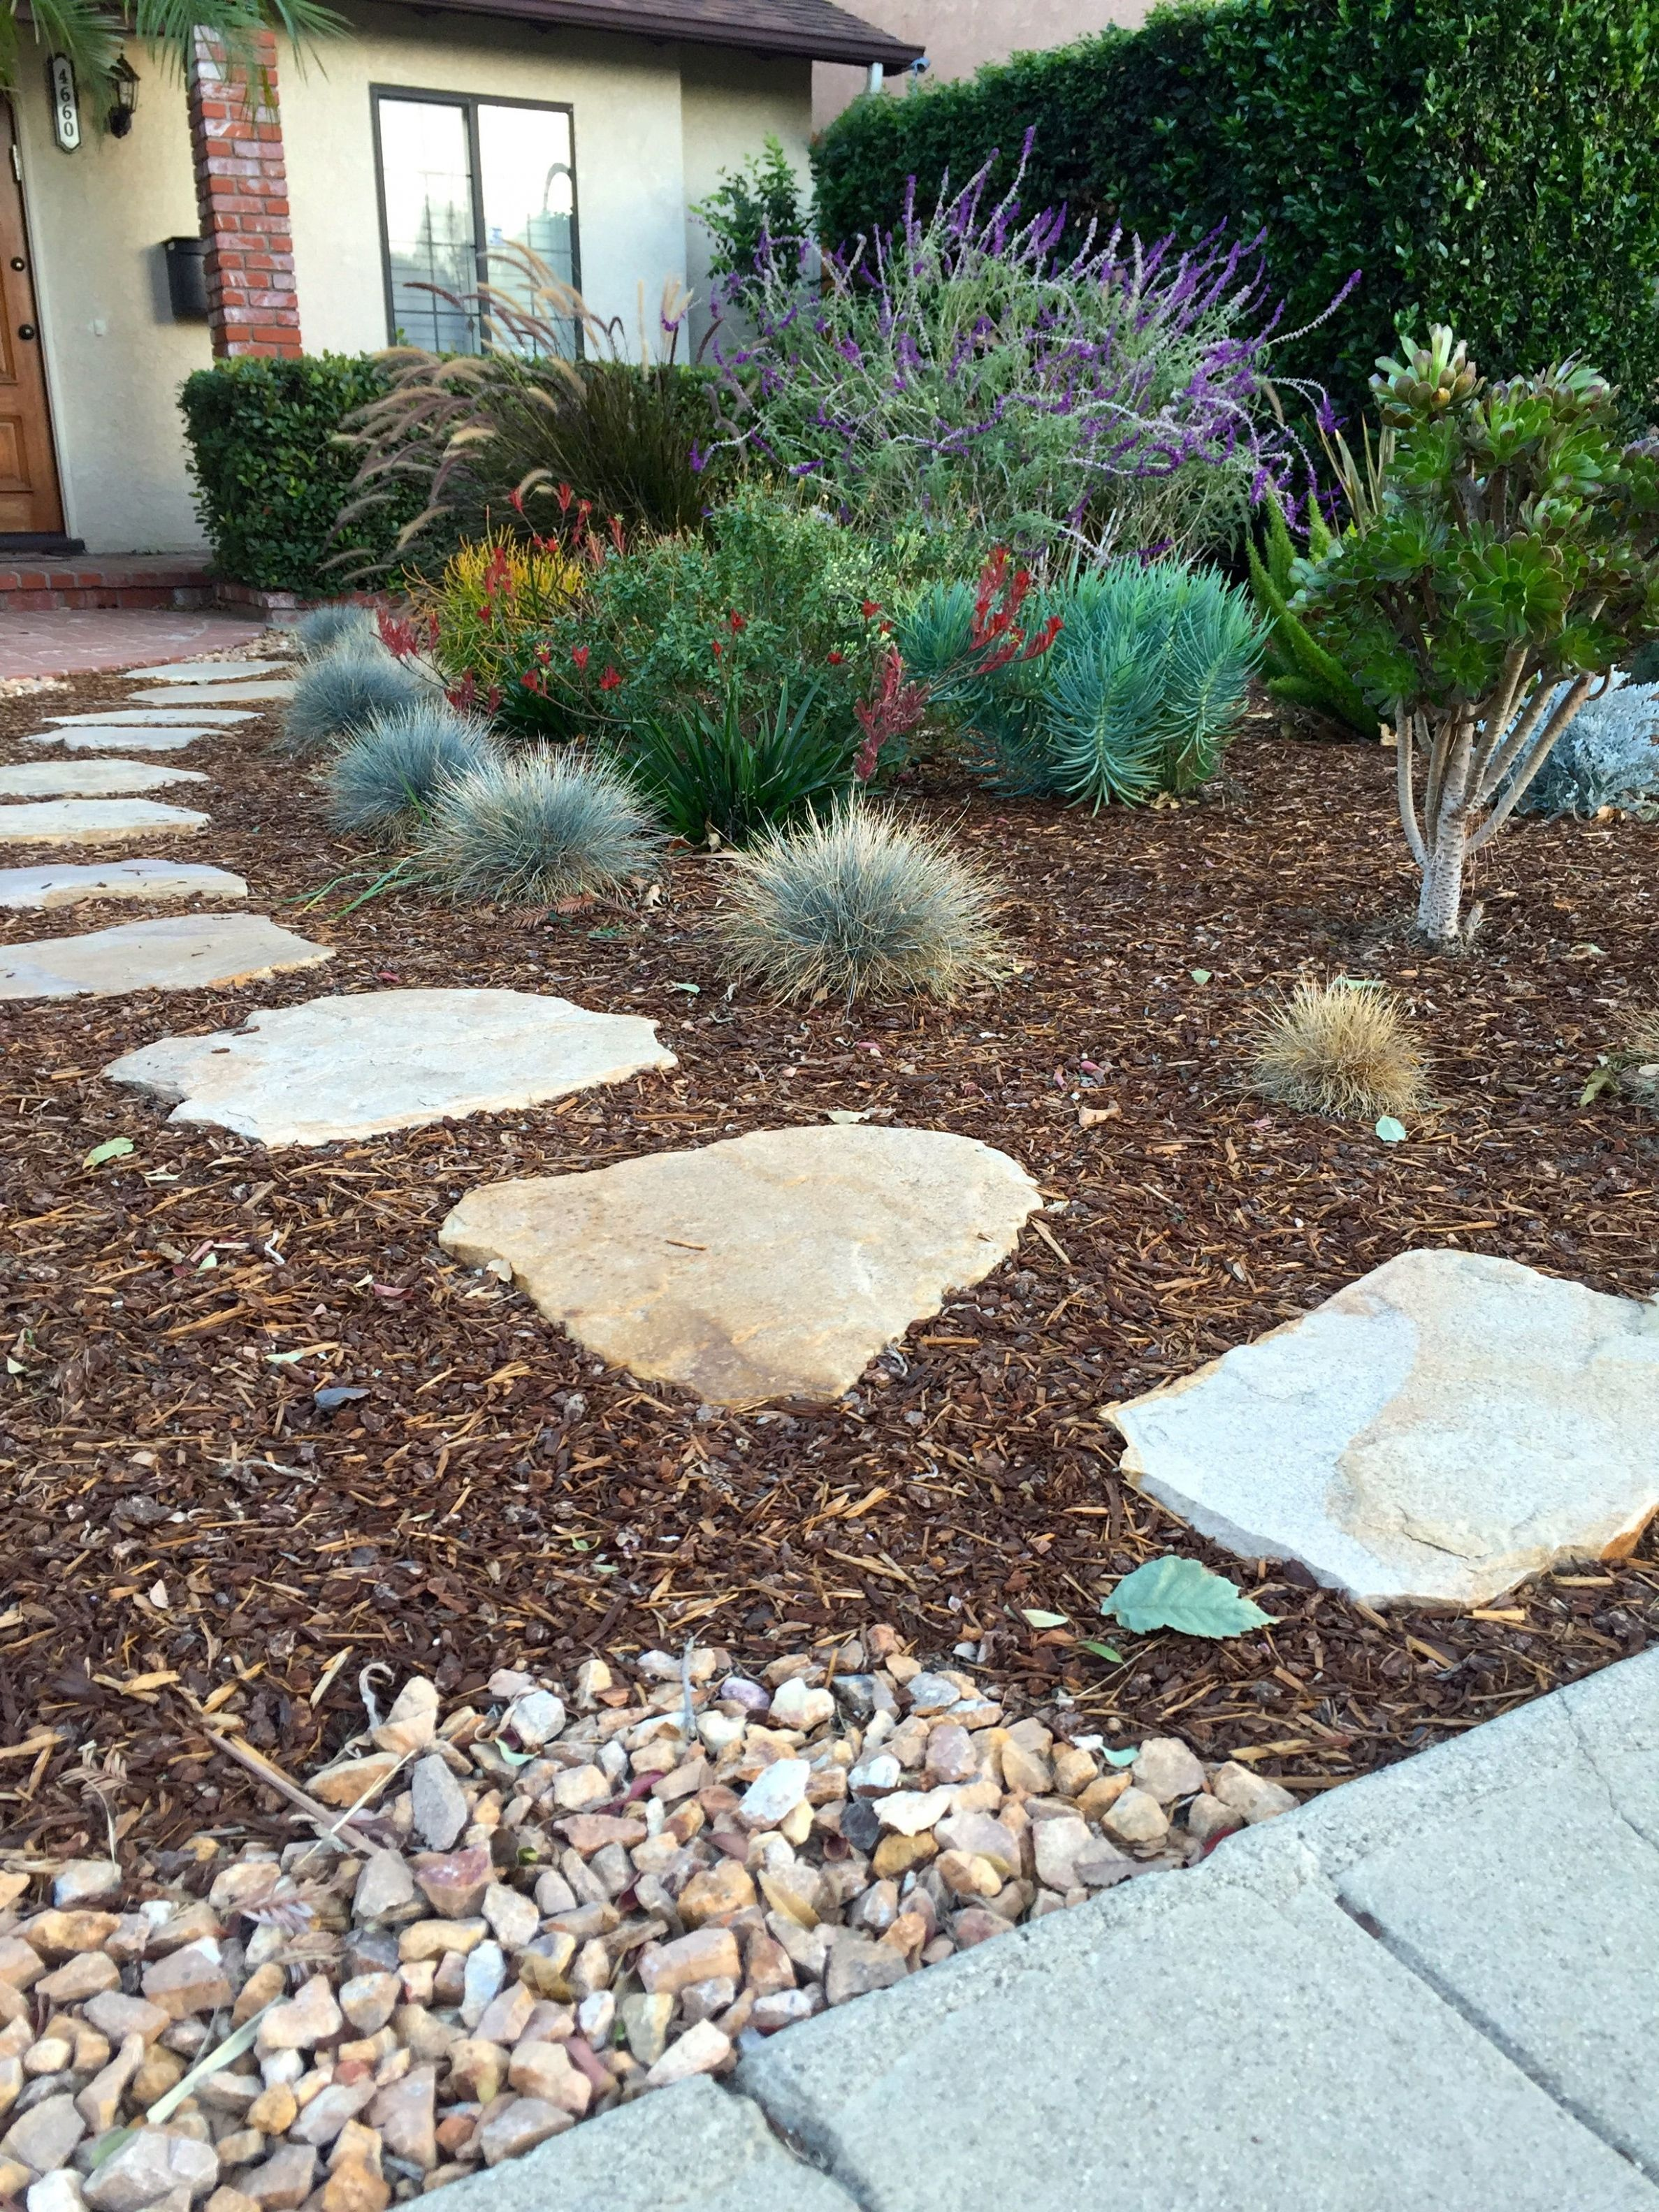 19 Landscaping Ideas With Rocks And Mulch Landscaping With Rocks Low Water Landscaping Mulch Landscaping